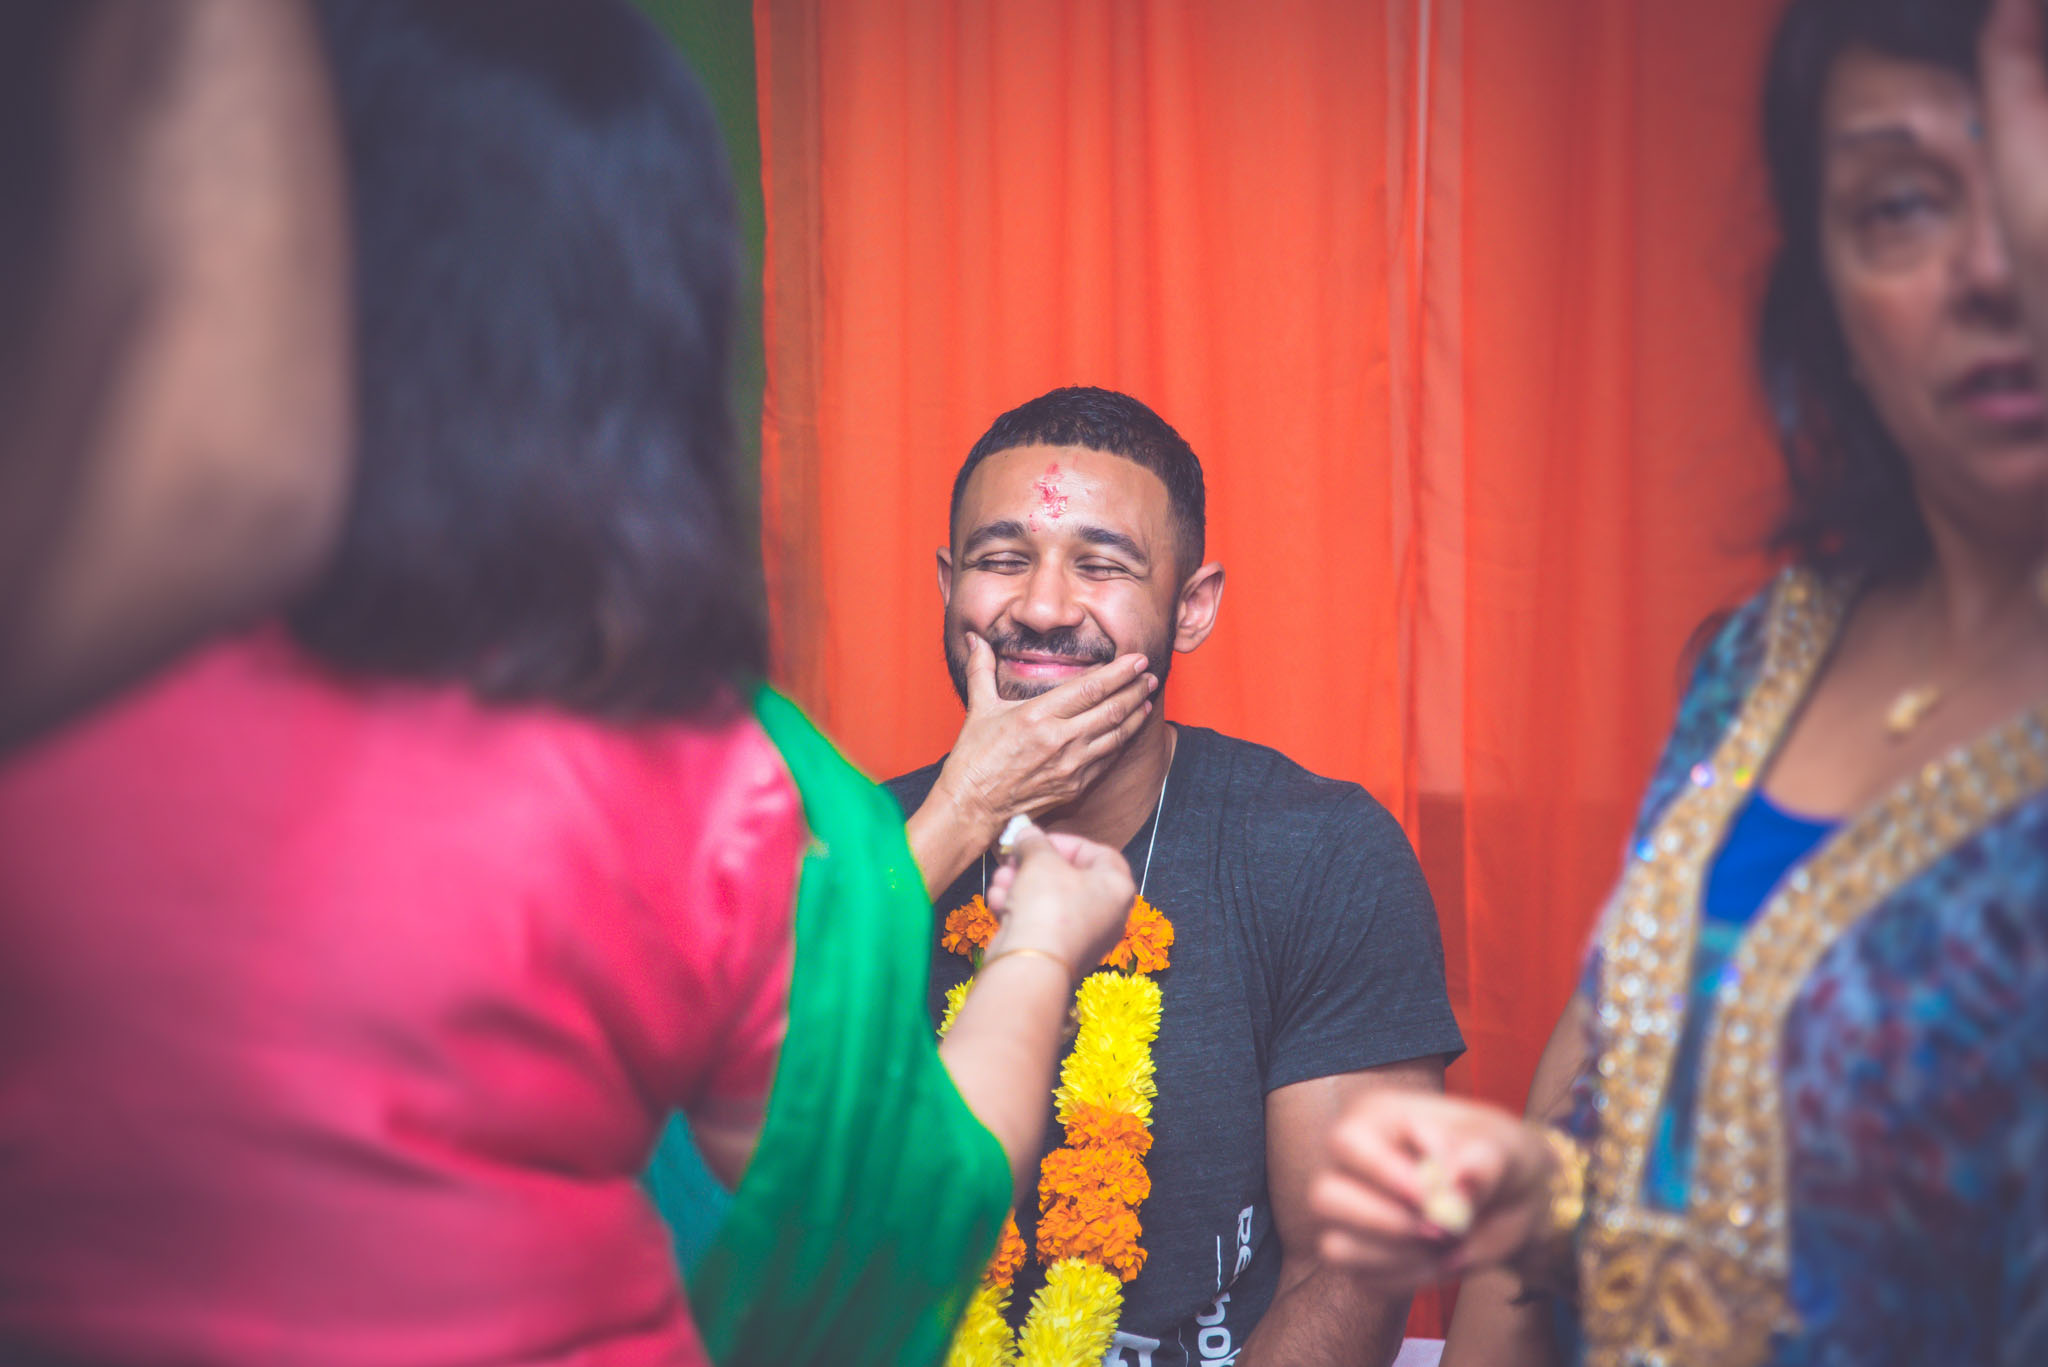 Candid-Wedding-Photography-WhatKnot-Goa-5